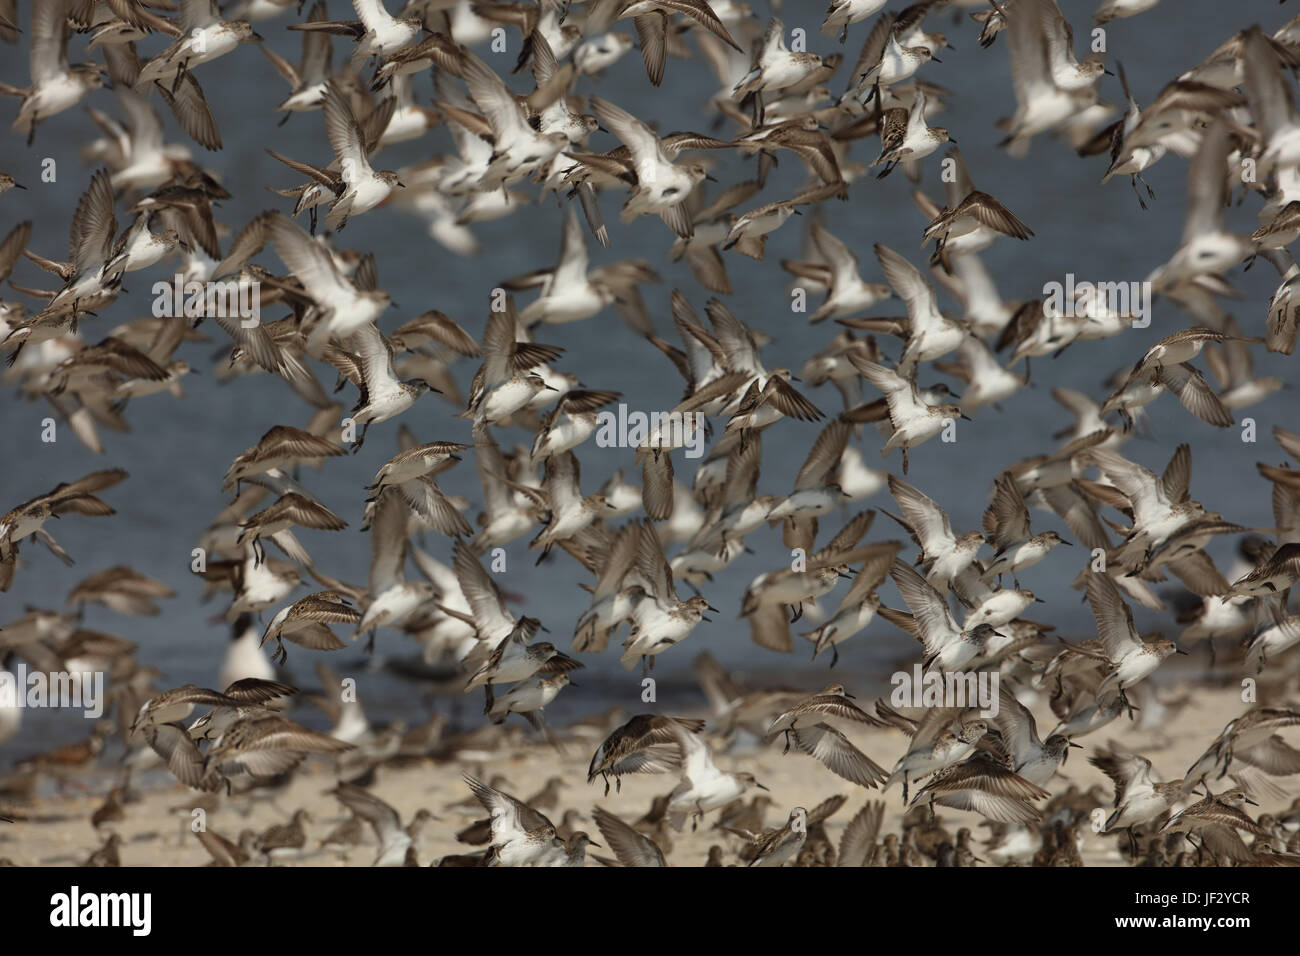 mixed shorebird flock, mostly semi-palmated sandpipers, Delaware bay, New Jersey - Stock Image